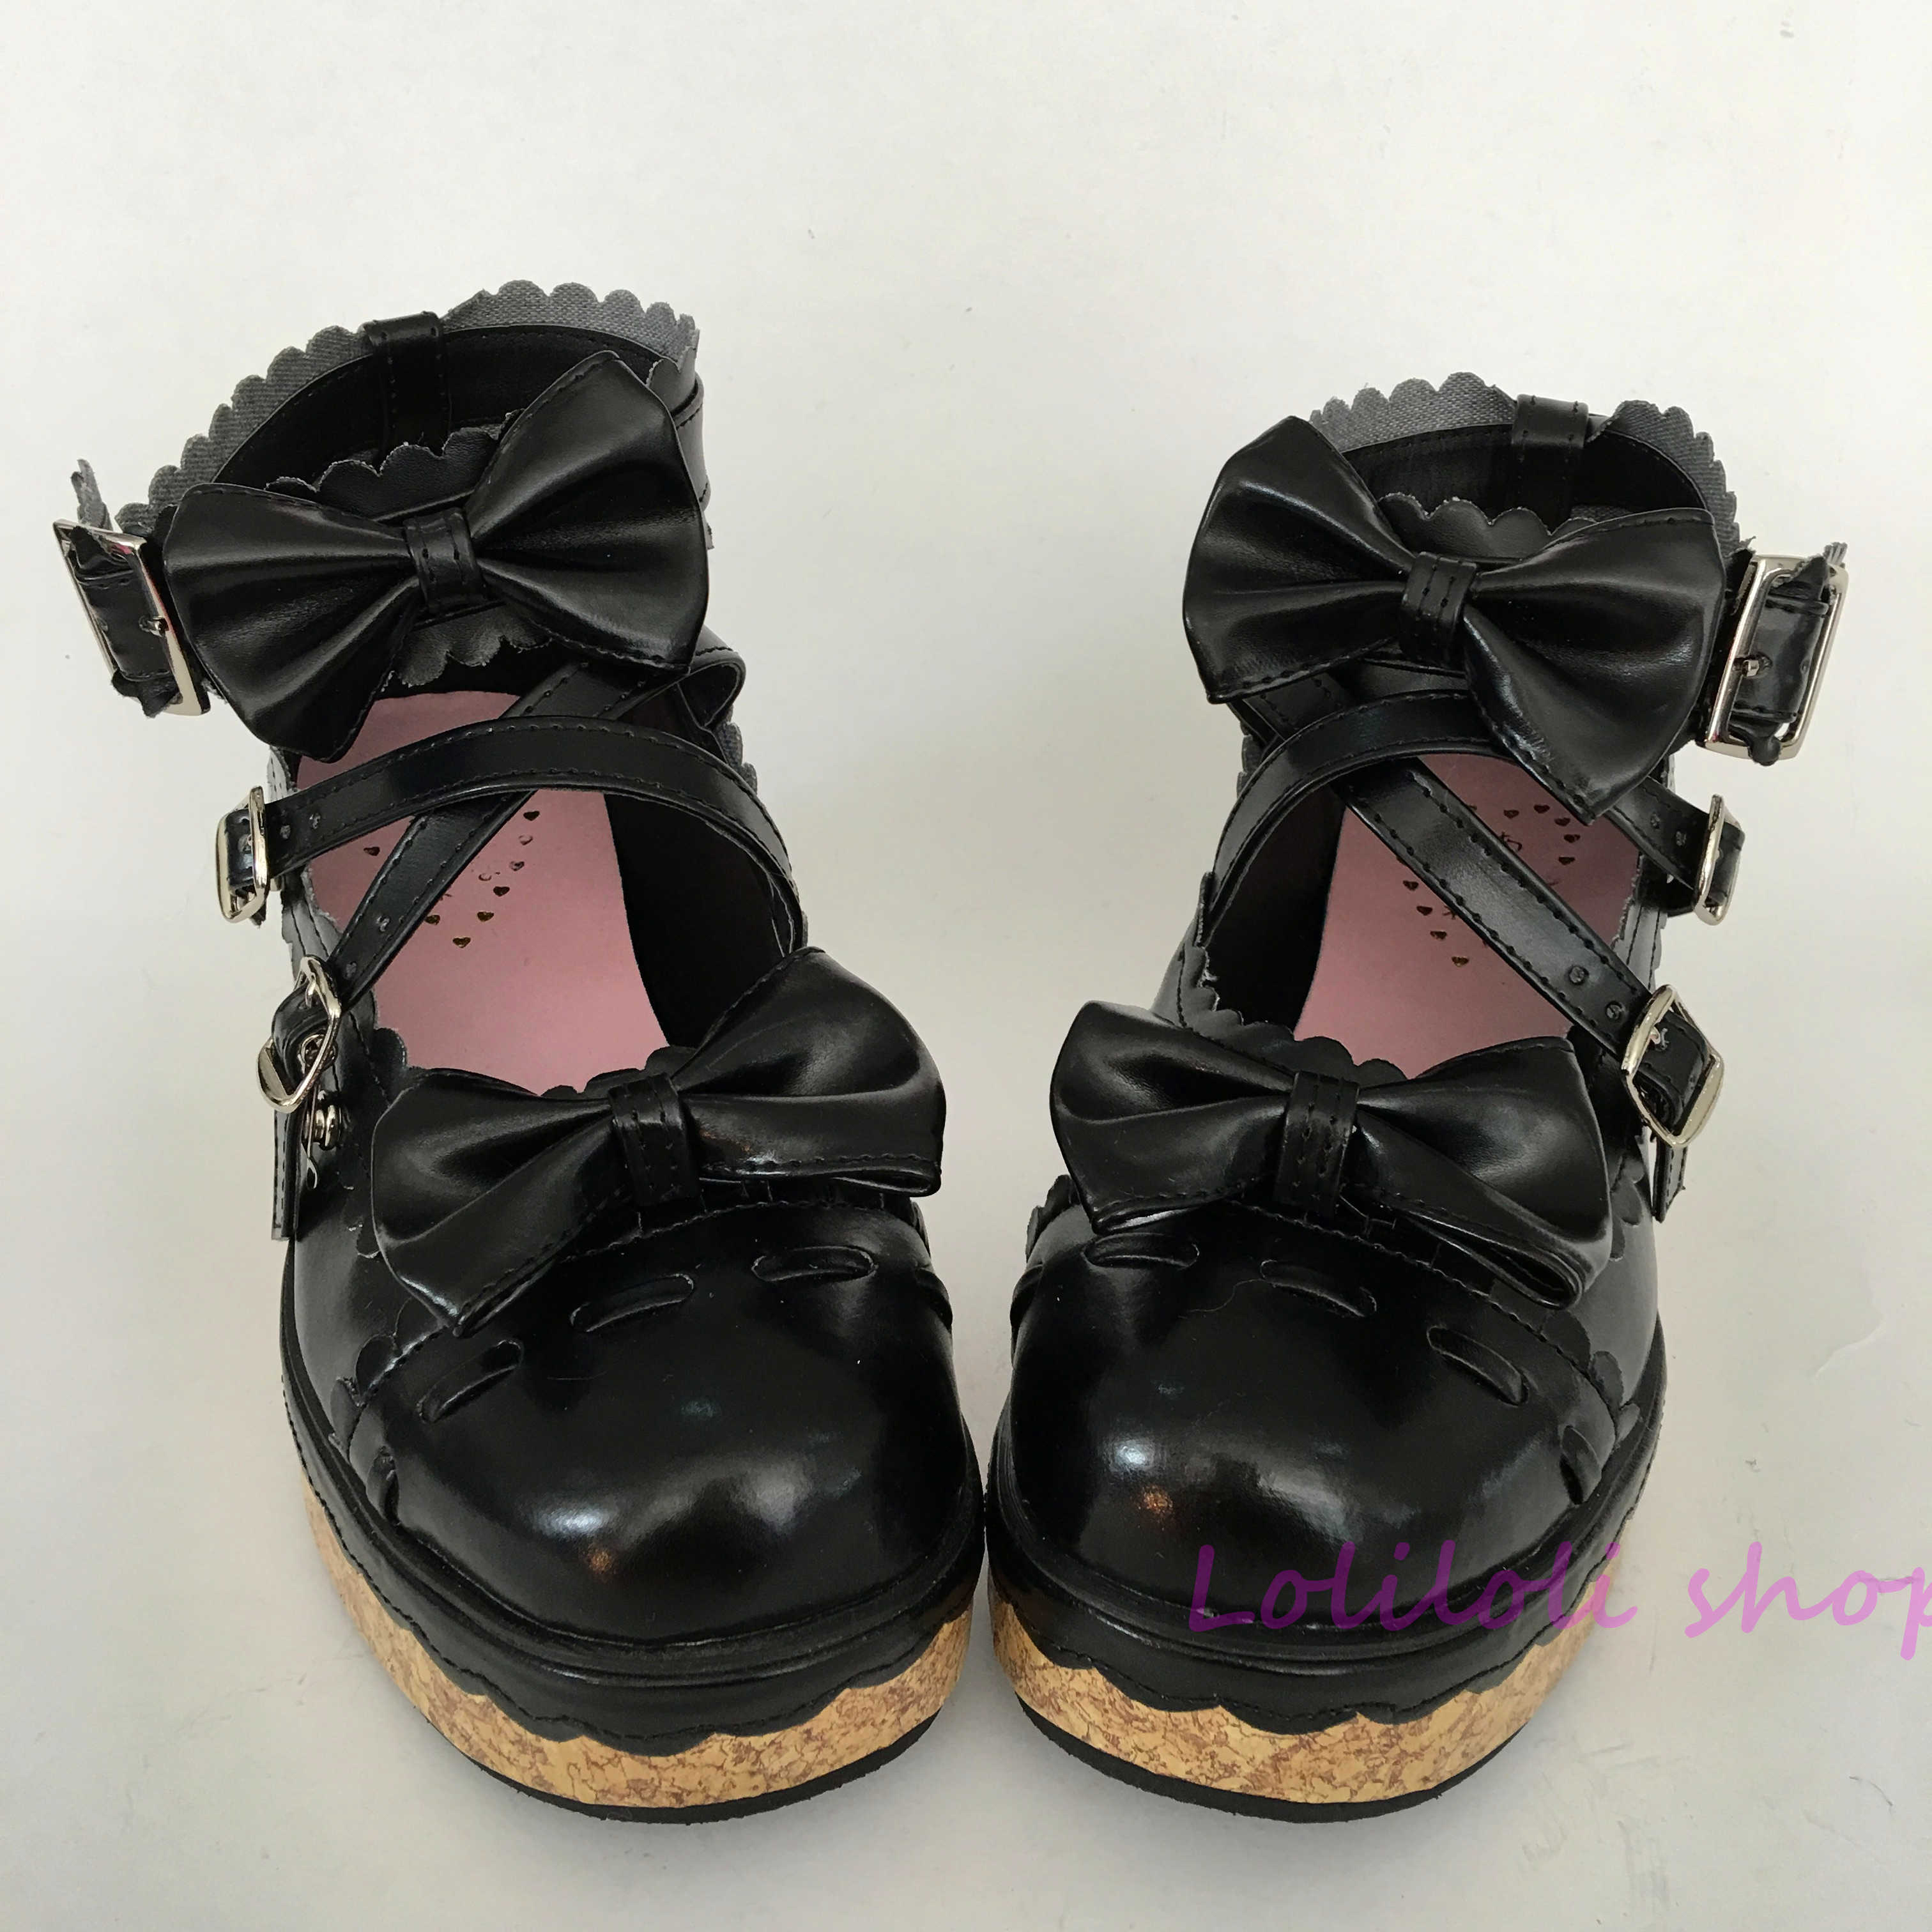 Princess sweet black lolita shoes Bow buckle Shoe of sponge cake Customer customized large size shoes By hand made lace an2002-8